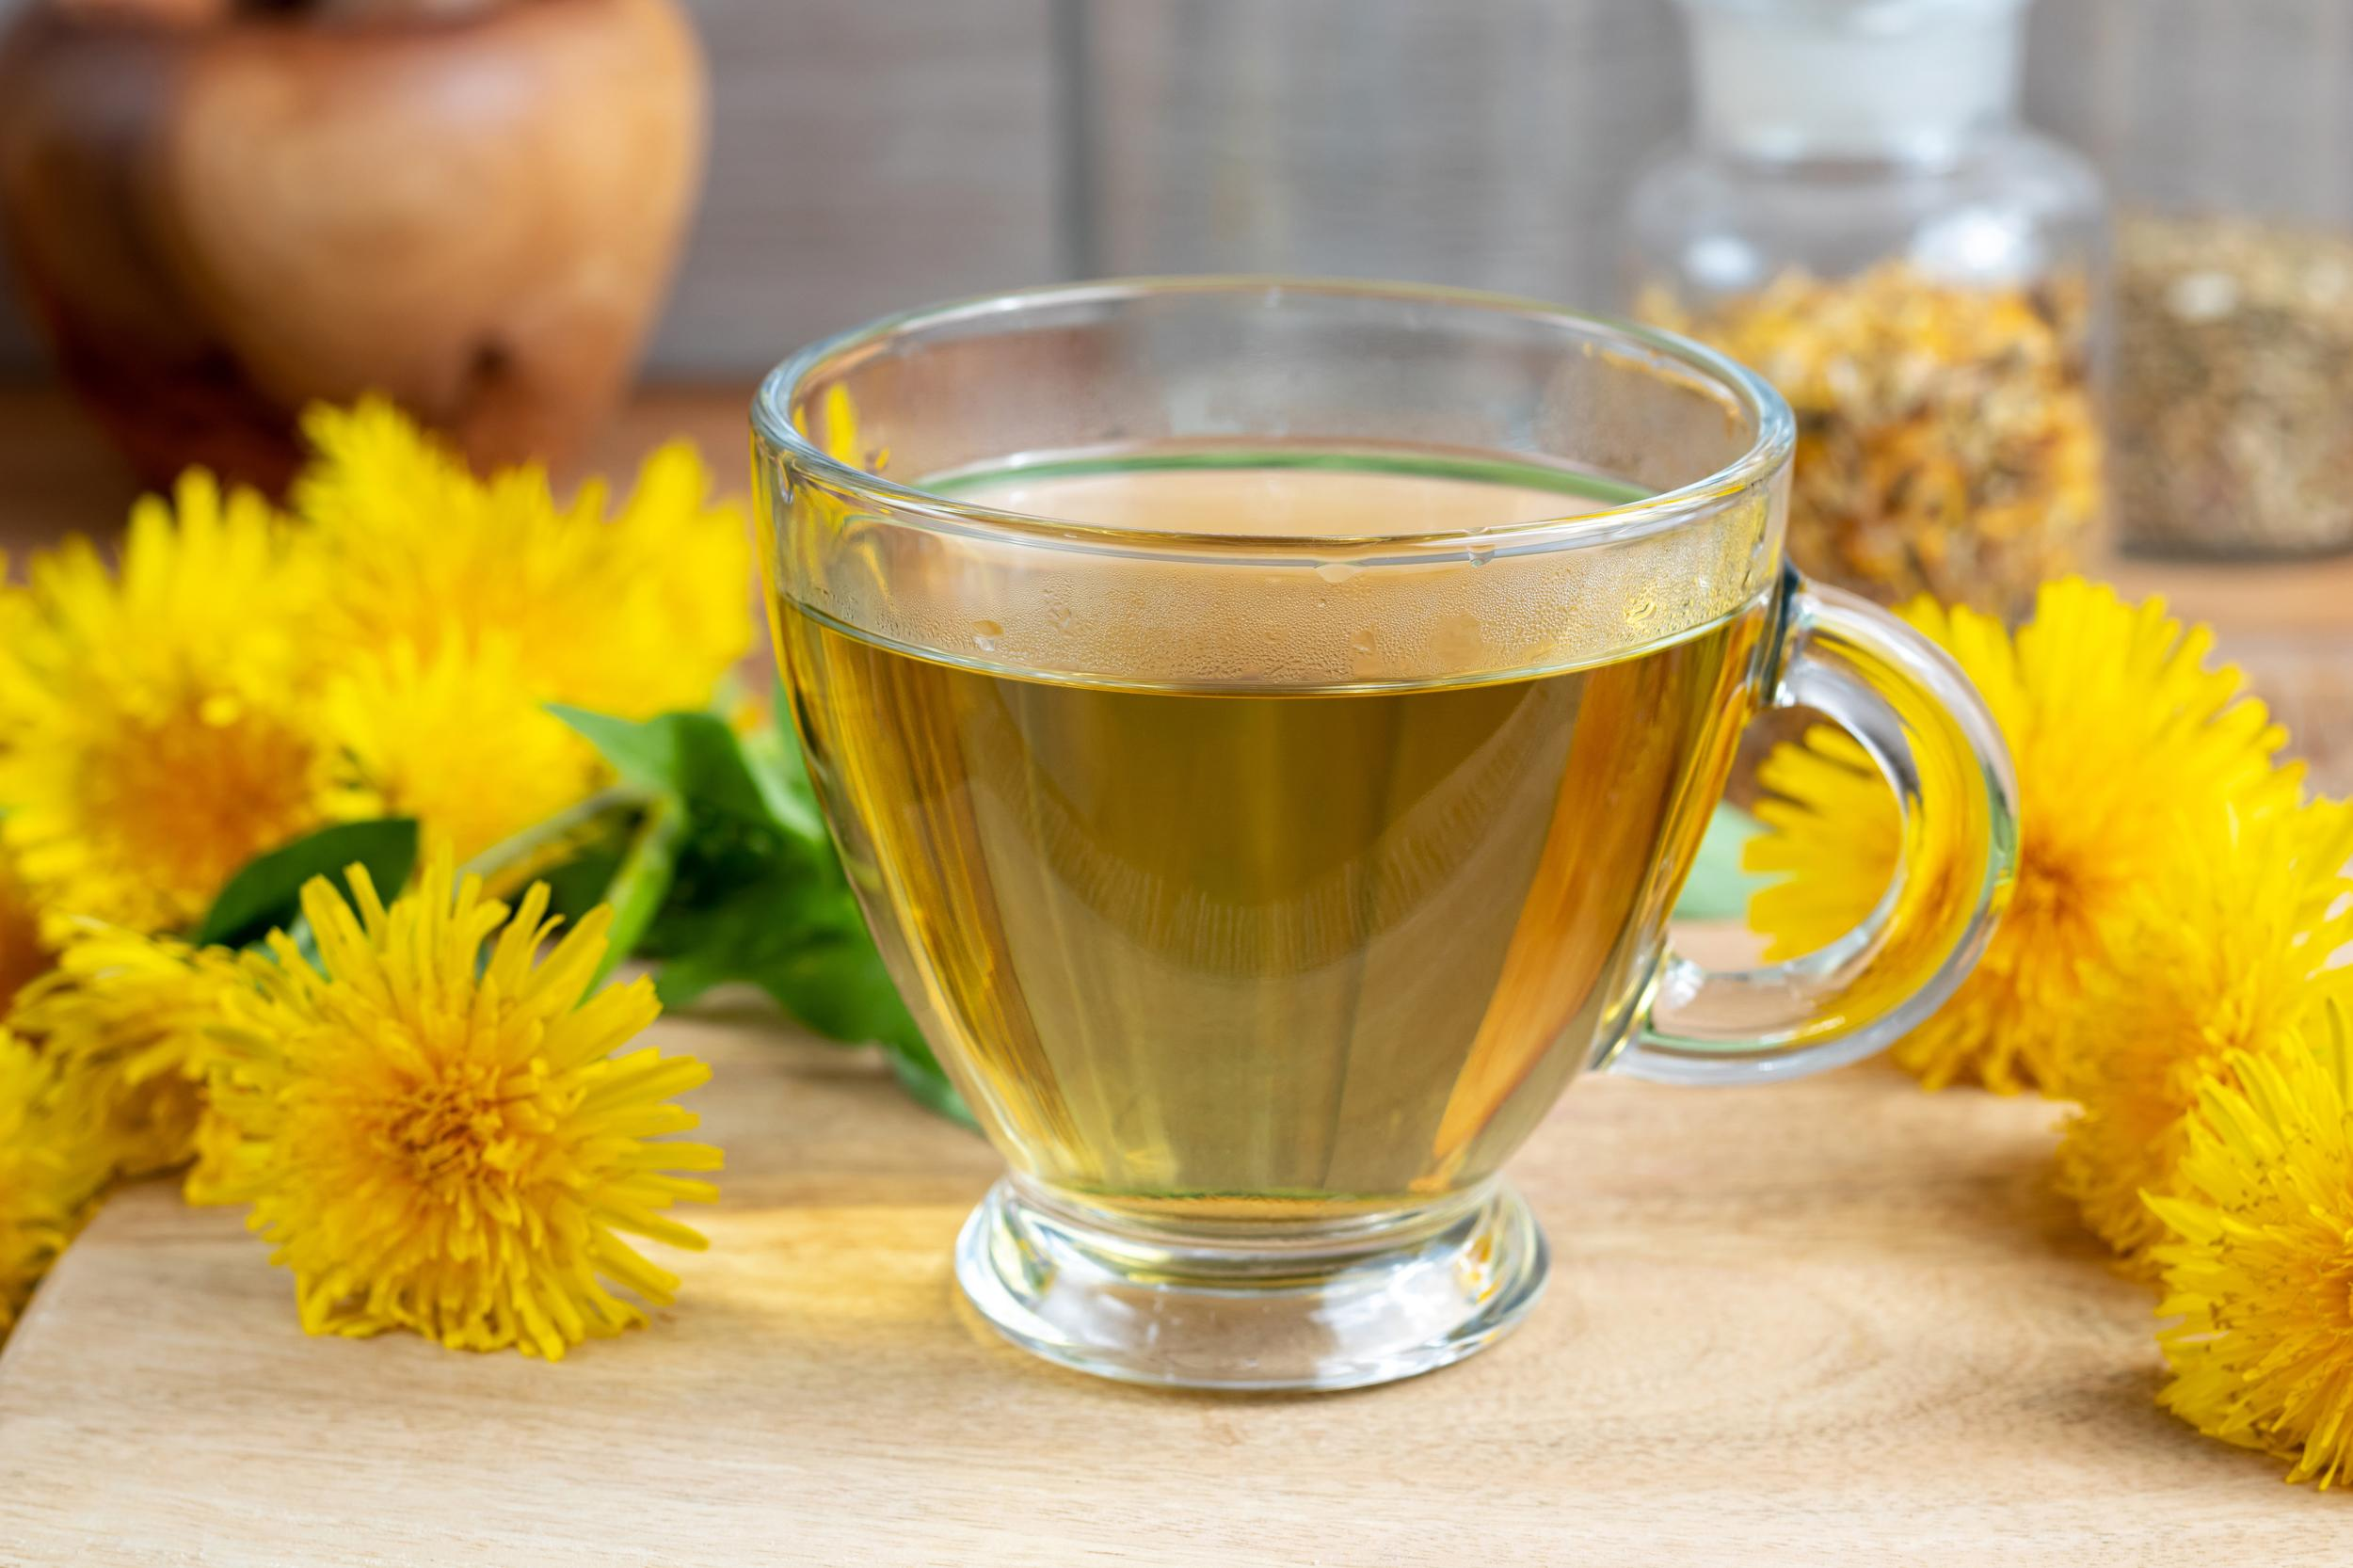 A cup of dandelion tea with fresh flowers and leaves